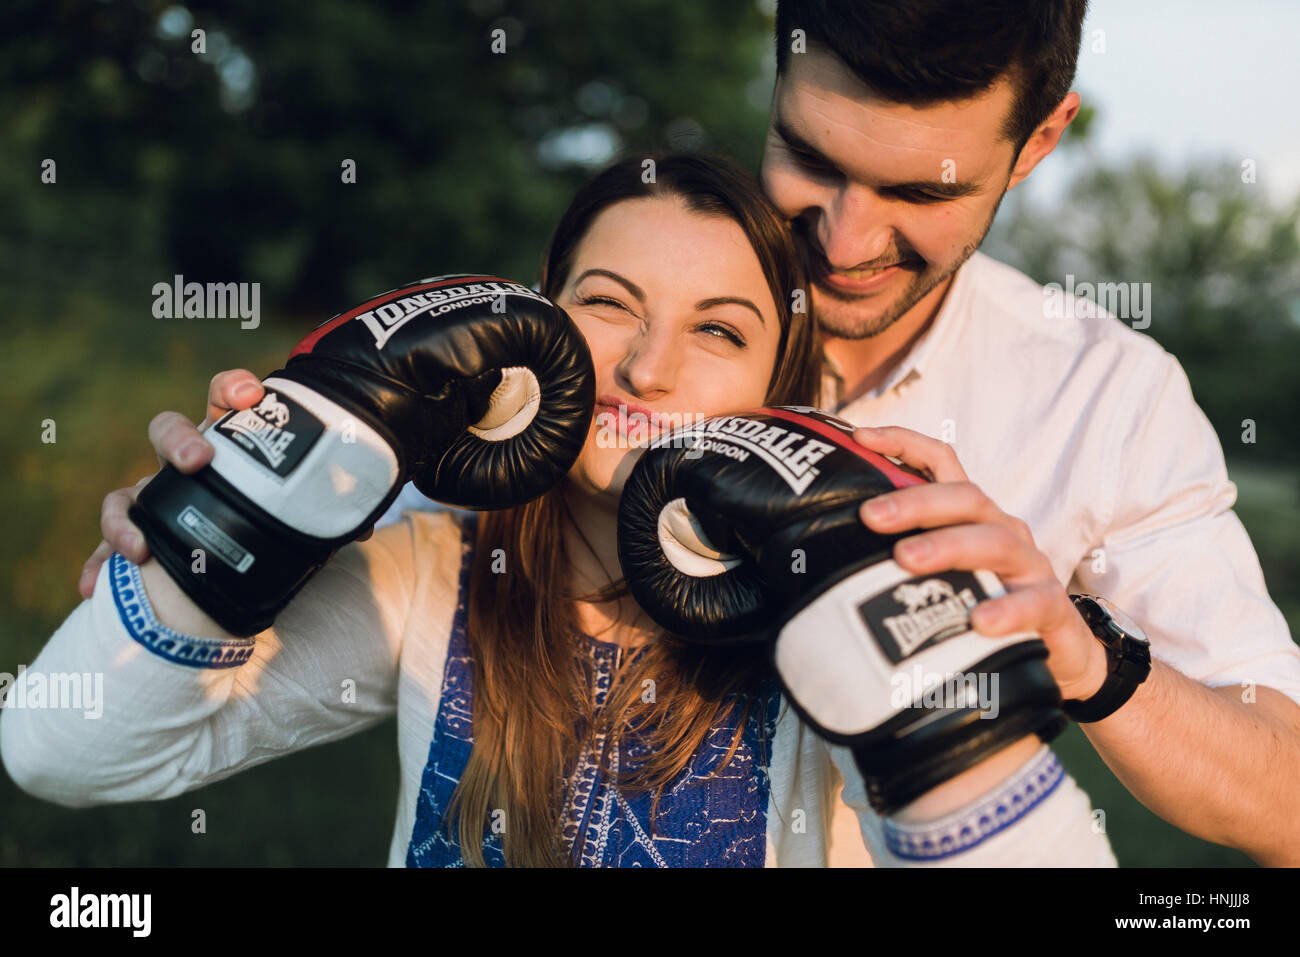 Young couple having fun with black boxing gloves, making funny faces - Stock Image